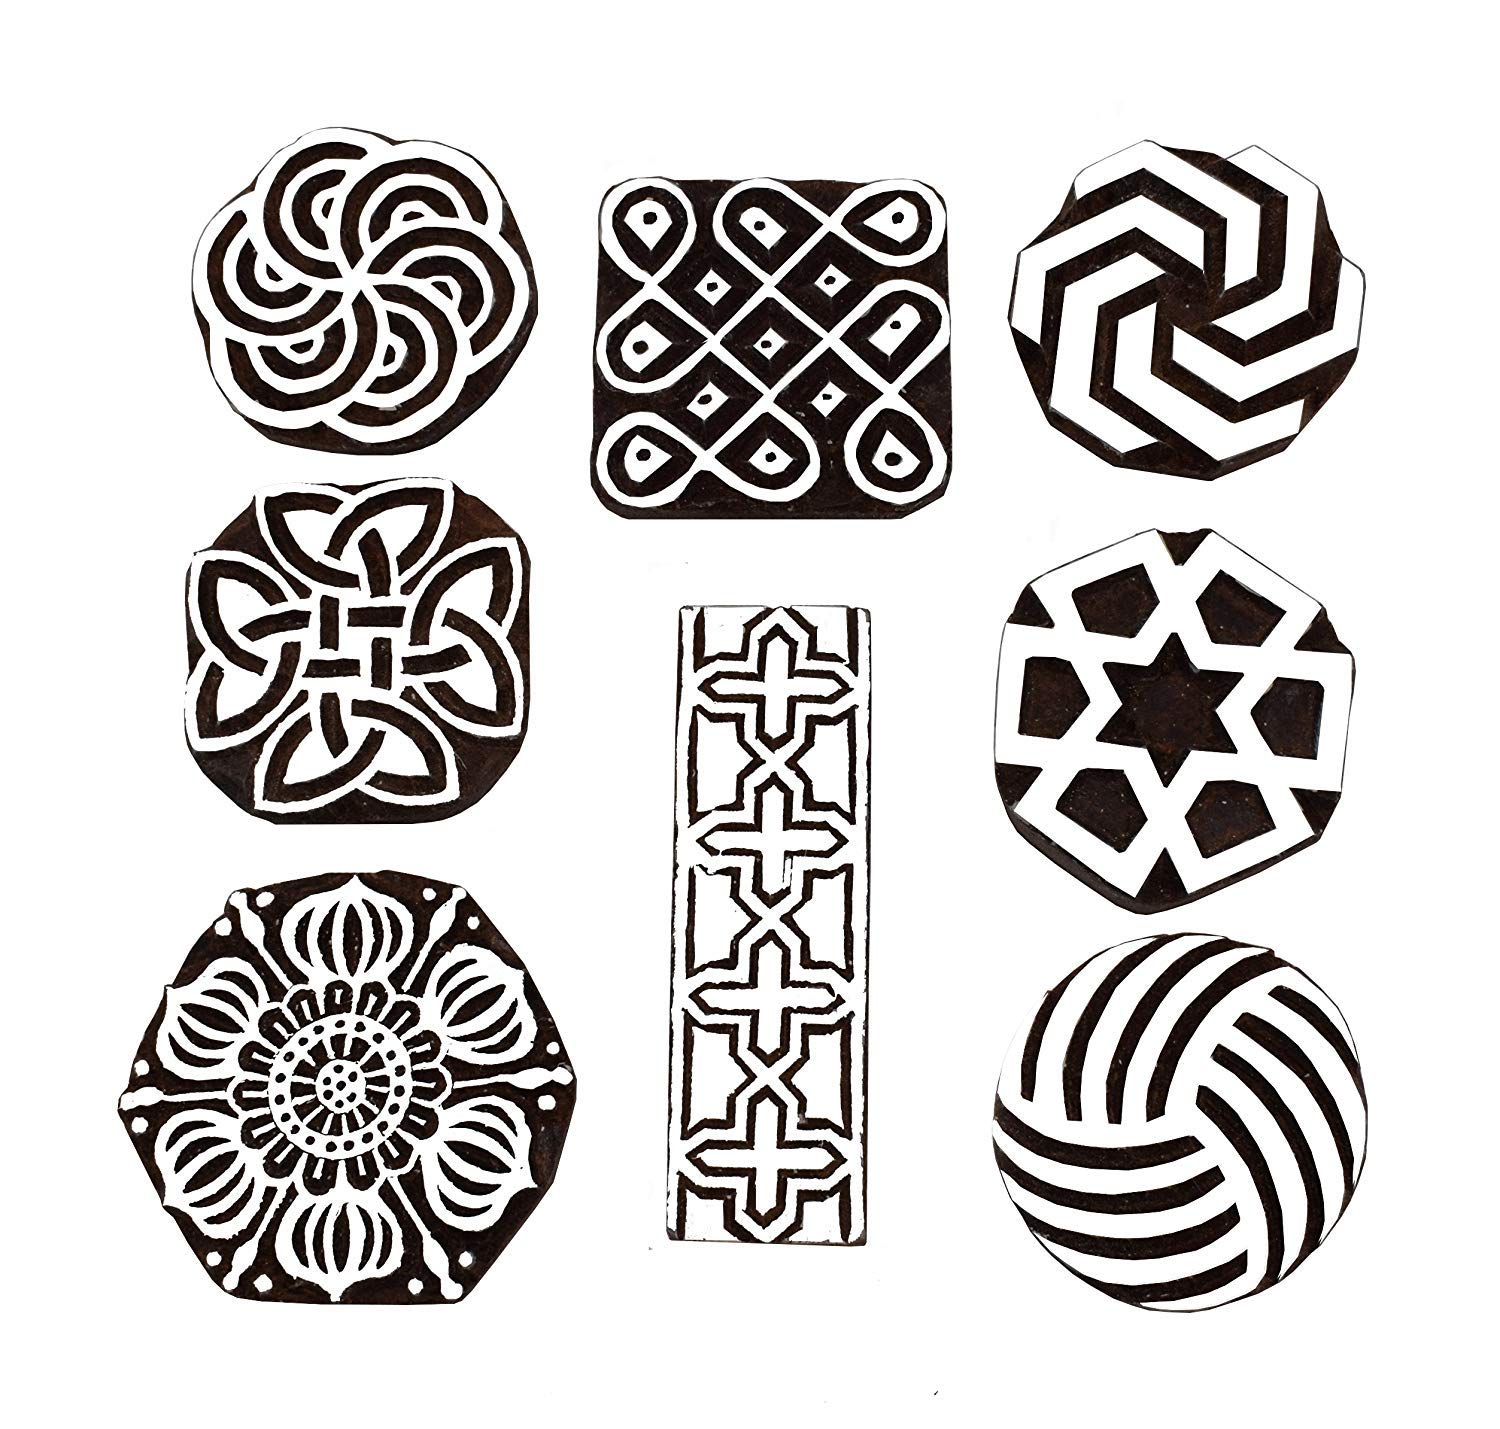 Block Printing Stamps/Wooden Stamping Block/Handcarved Designer Craft Printing Pattern for Saree Border,Henna/Textile Printing Set of 8